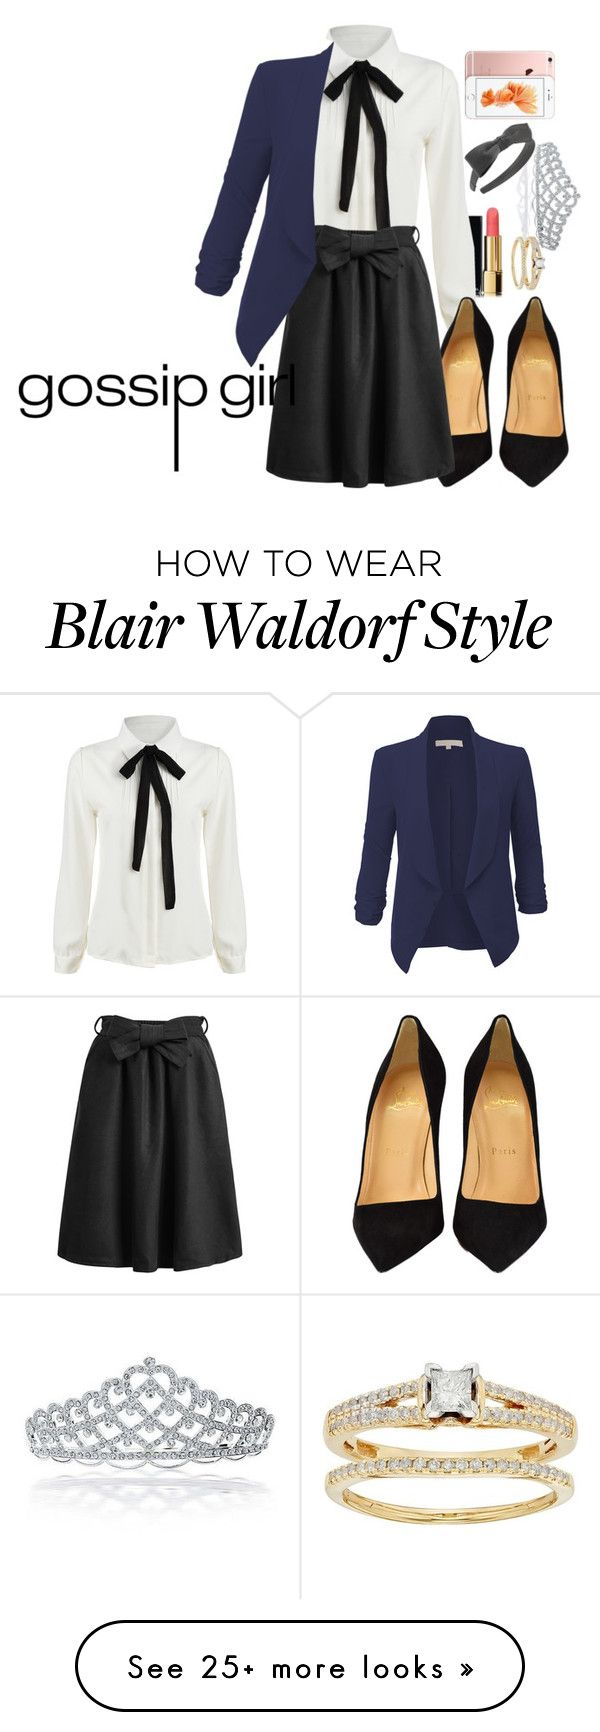 """""""Blair Waldorf Inspired Gossip Girl"""" by kittycat-477 on Polyvore featuring Bling Jewelry, Chanel, Christian Louboutin, L. Erickson, LE3NO, blairwaldorf, gossipgirl, blair, gg and waldorf"""